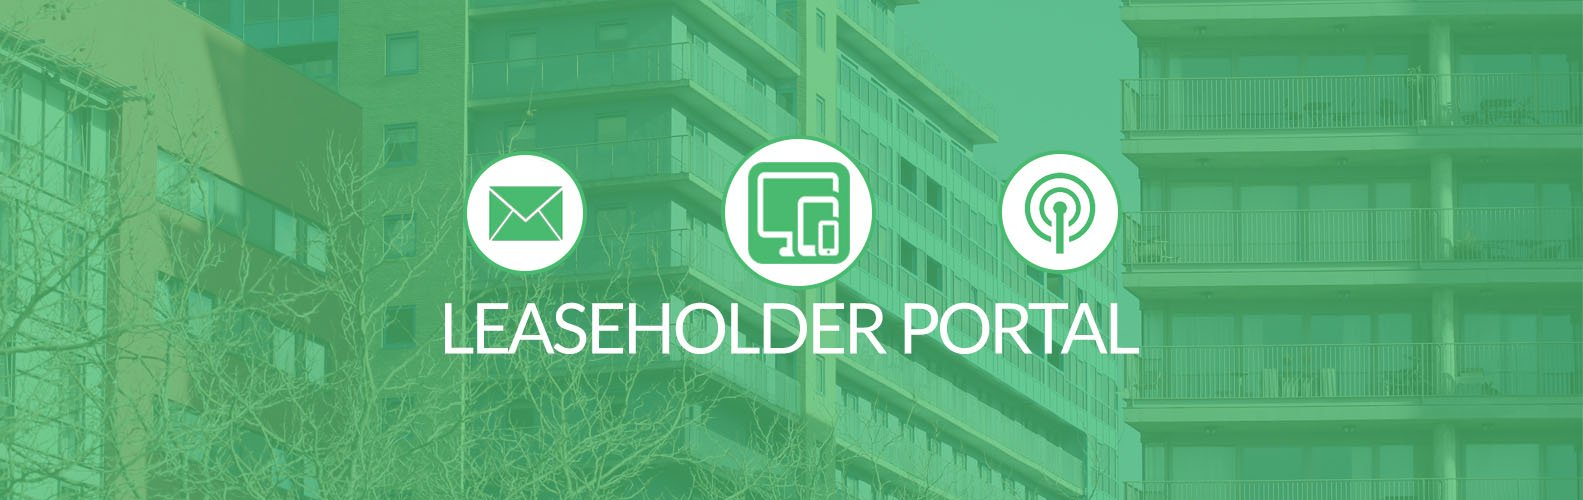 Leaseholder Portal